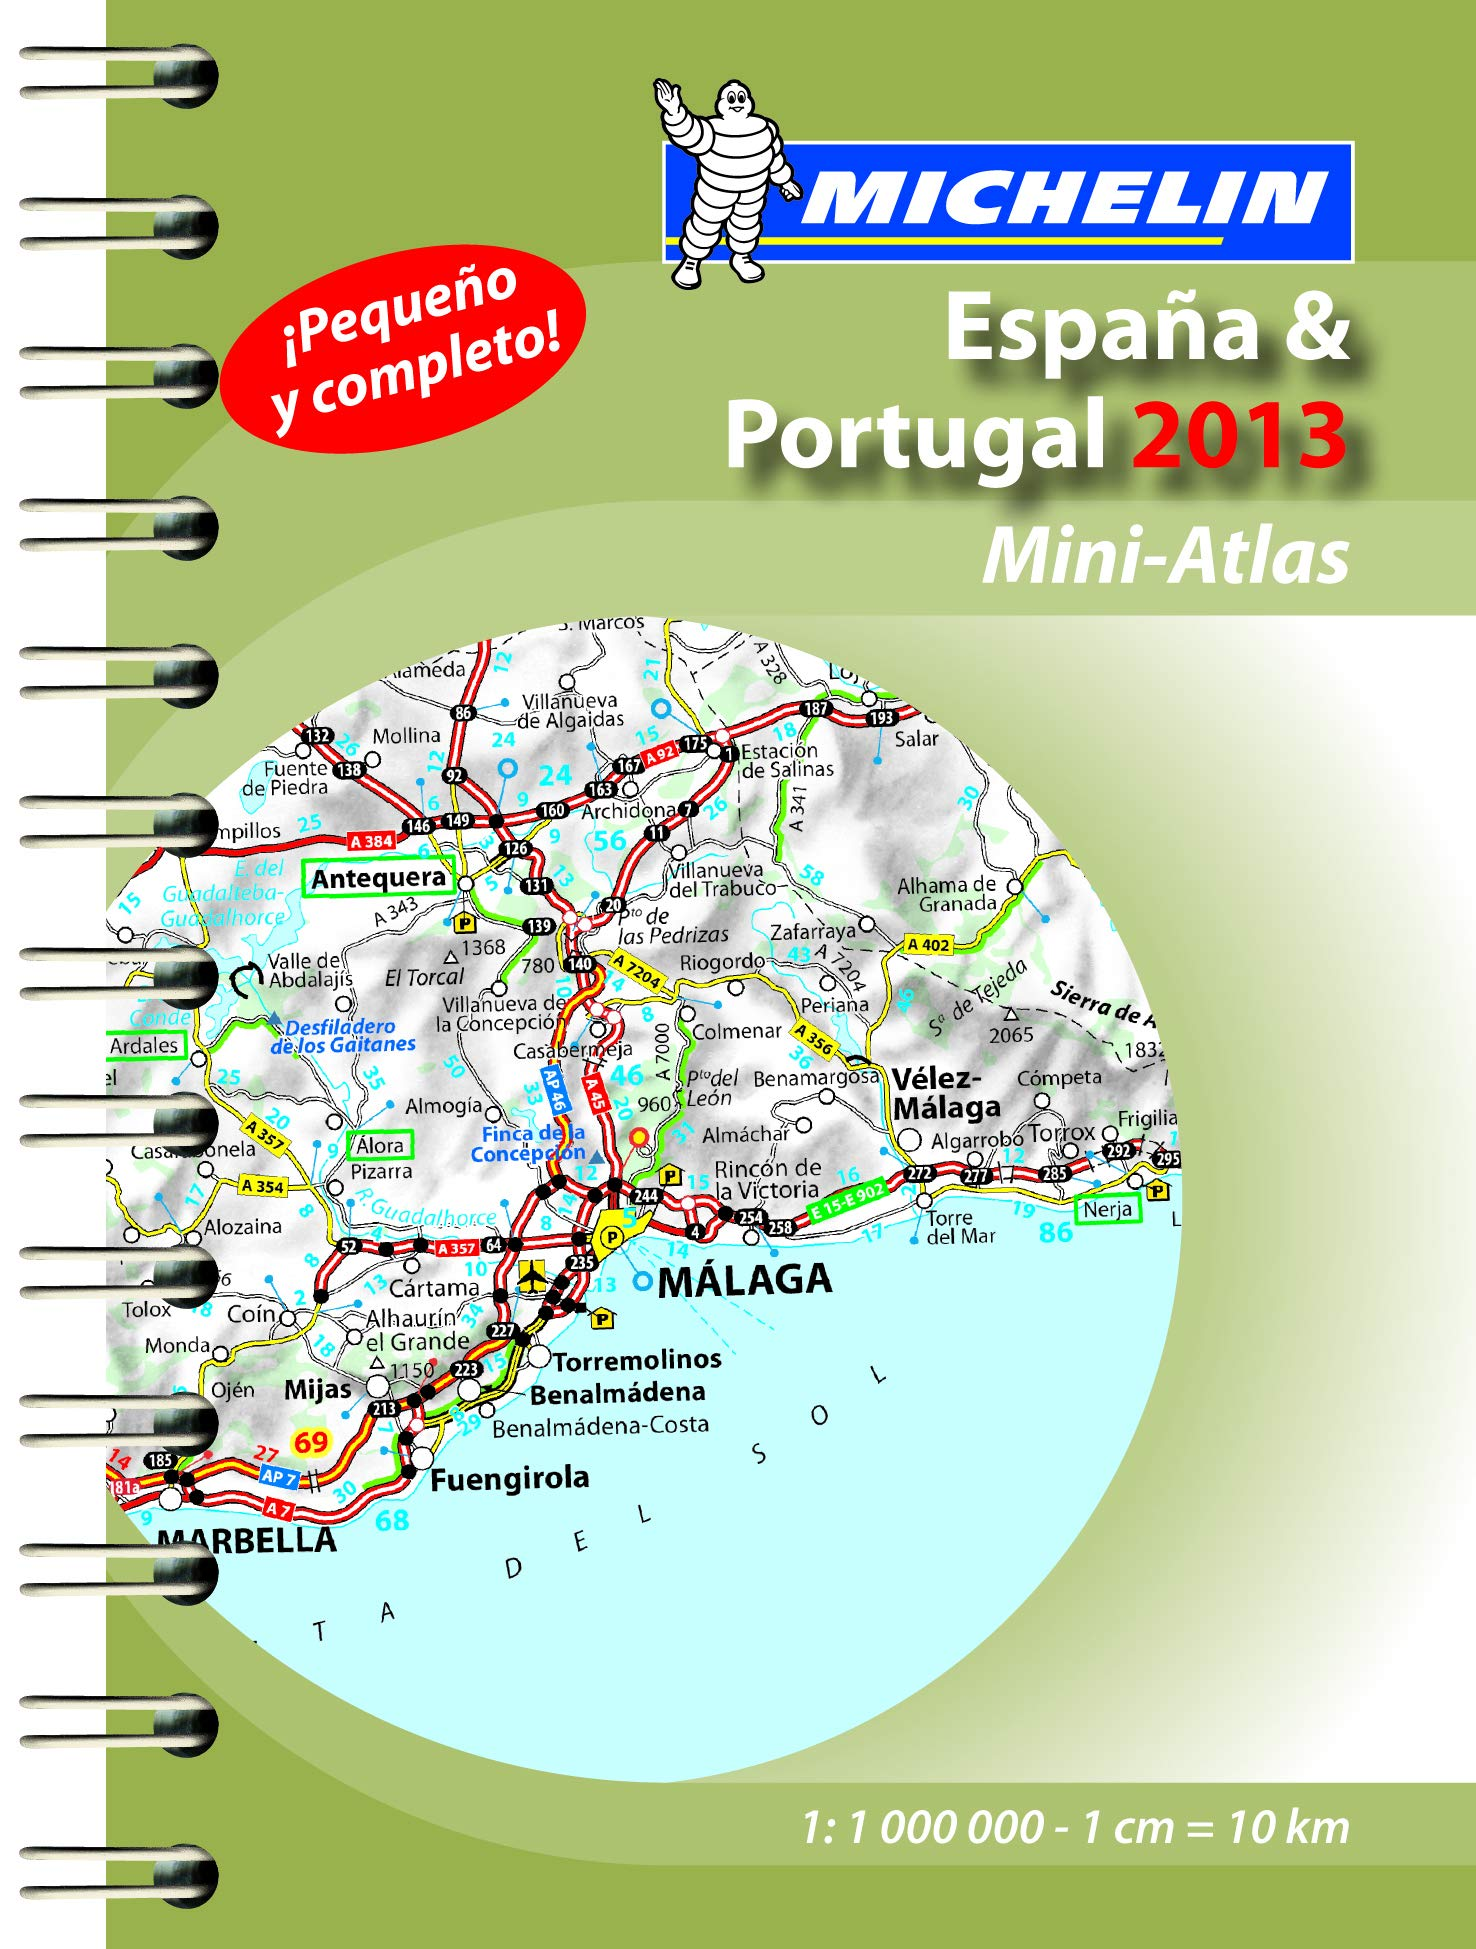 Mini Atlas España & Portugal 2013 Atlas de carreteras Michelin: Amazon.es: Michelin: Libros